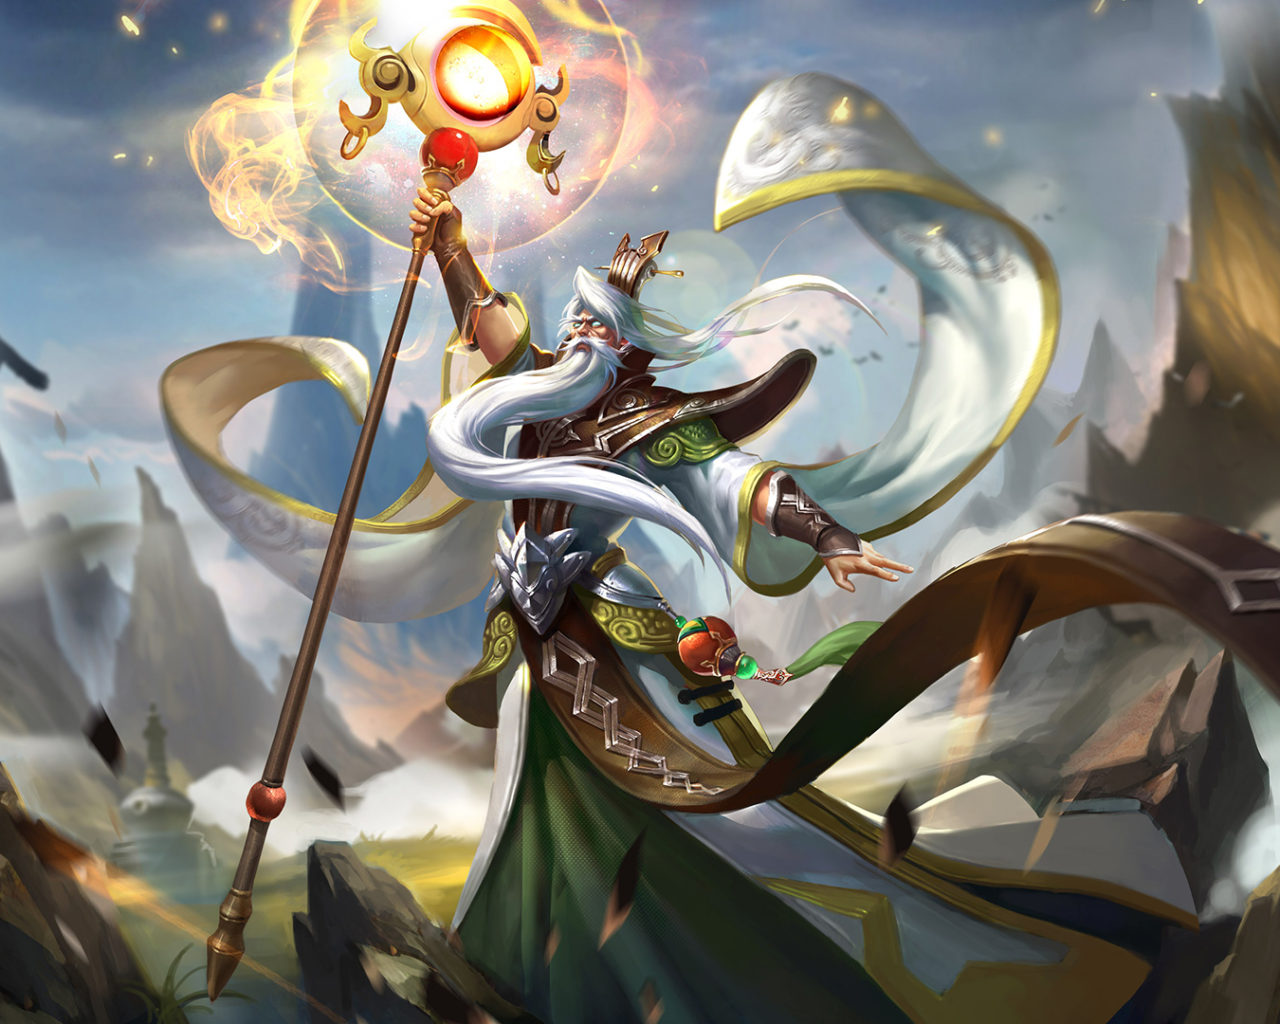 Gaming Wallpaper Iphone X King Of Glory Five Most Powerful Heroes Mage Skin Ginger